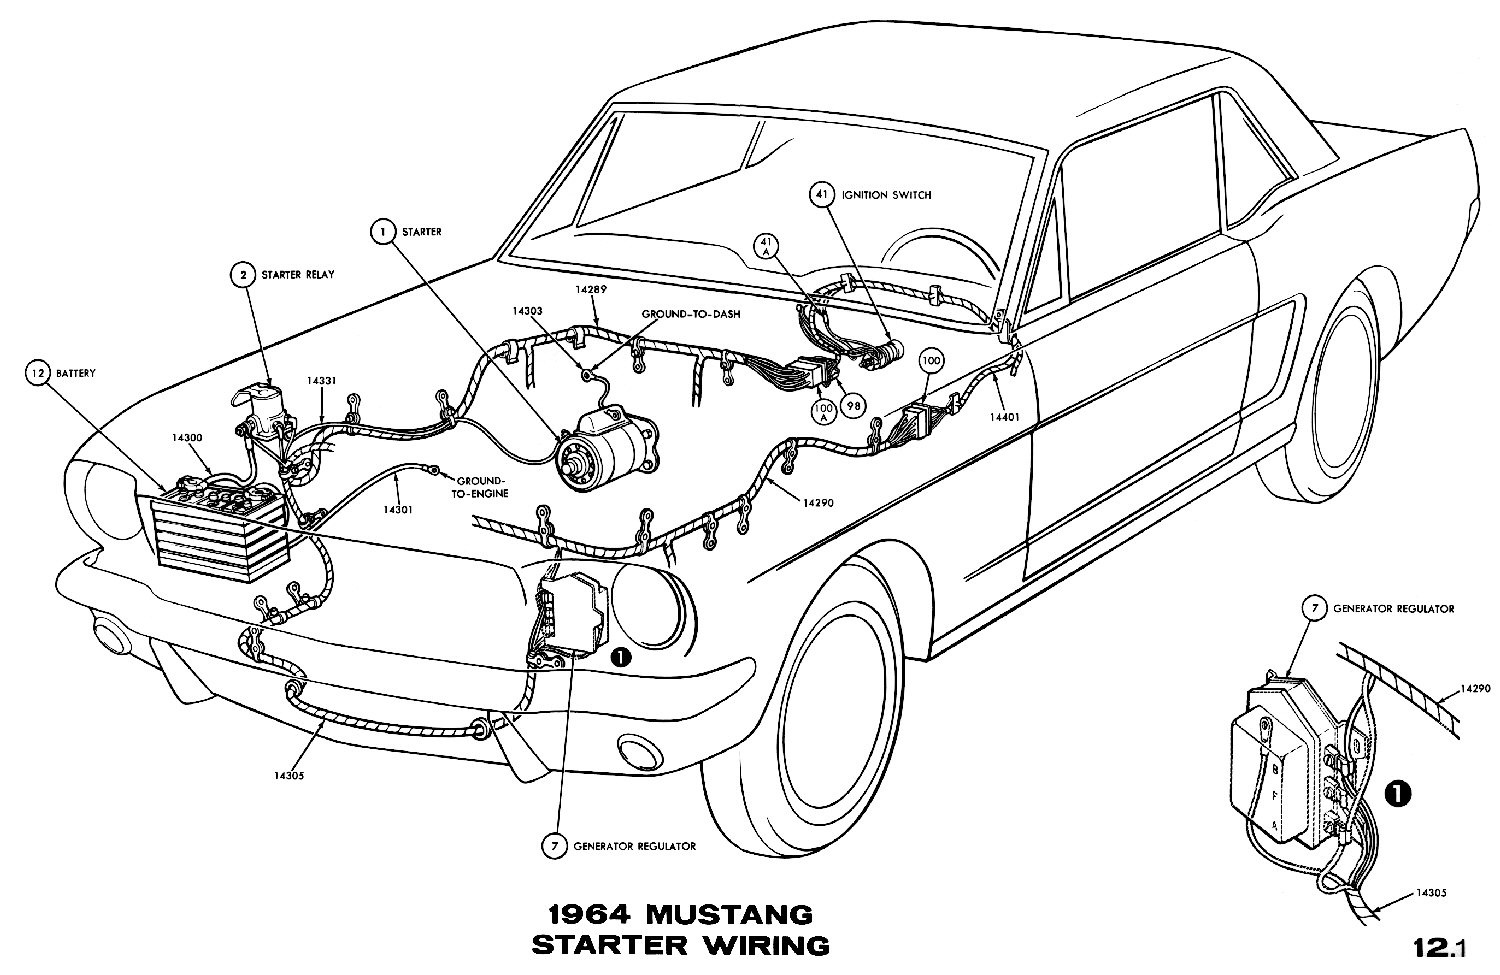 1964d 1964 mustang wiring diagrams average joe restoration